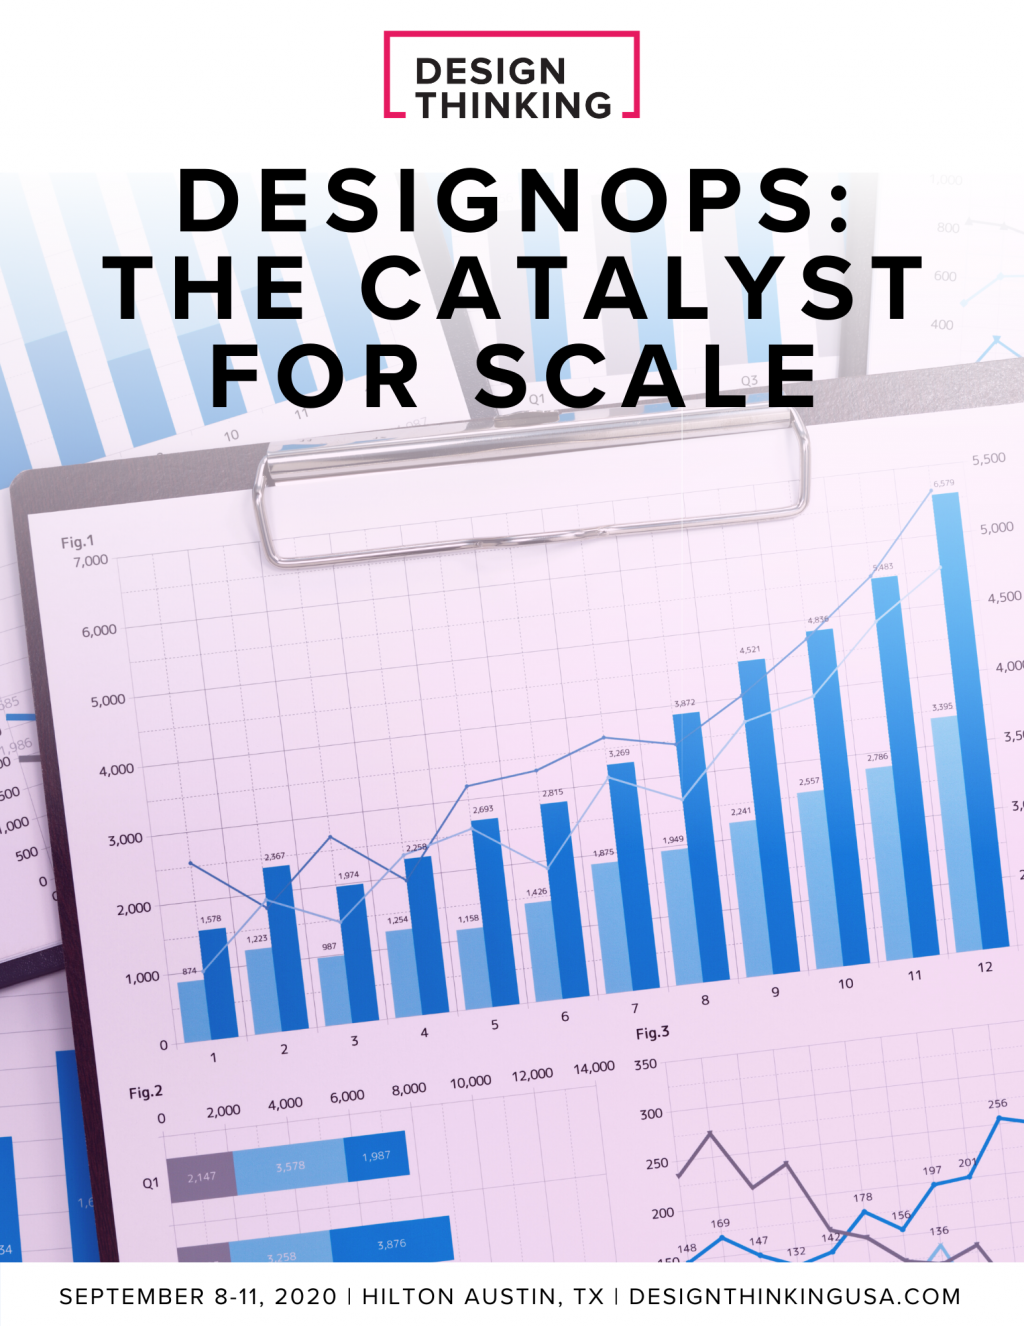 Design Thinking 201 - DesignOps: The Catalyst for Scale